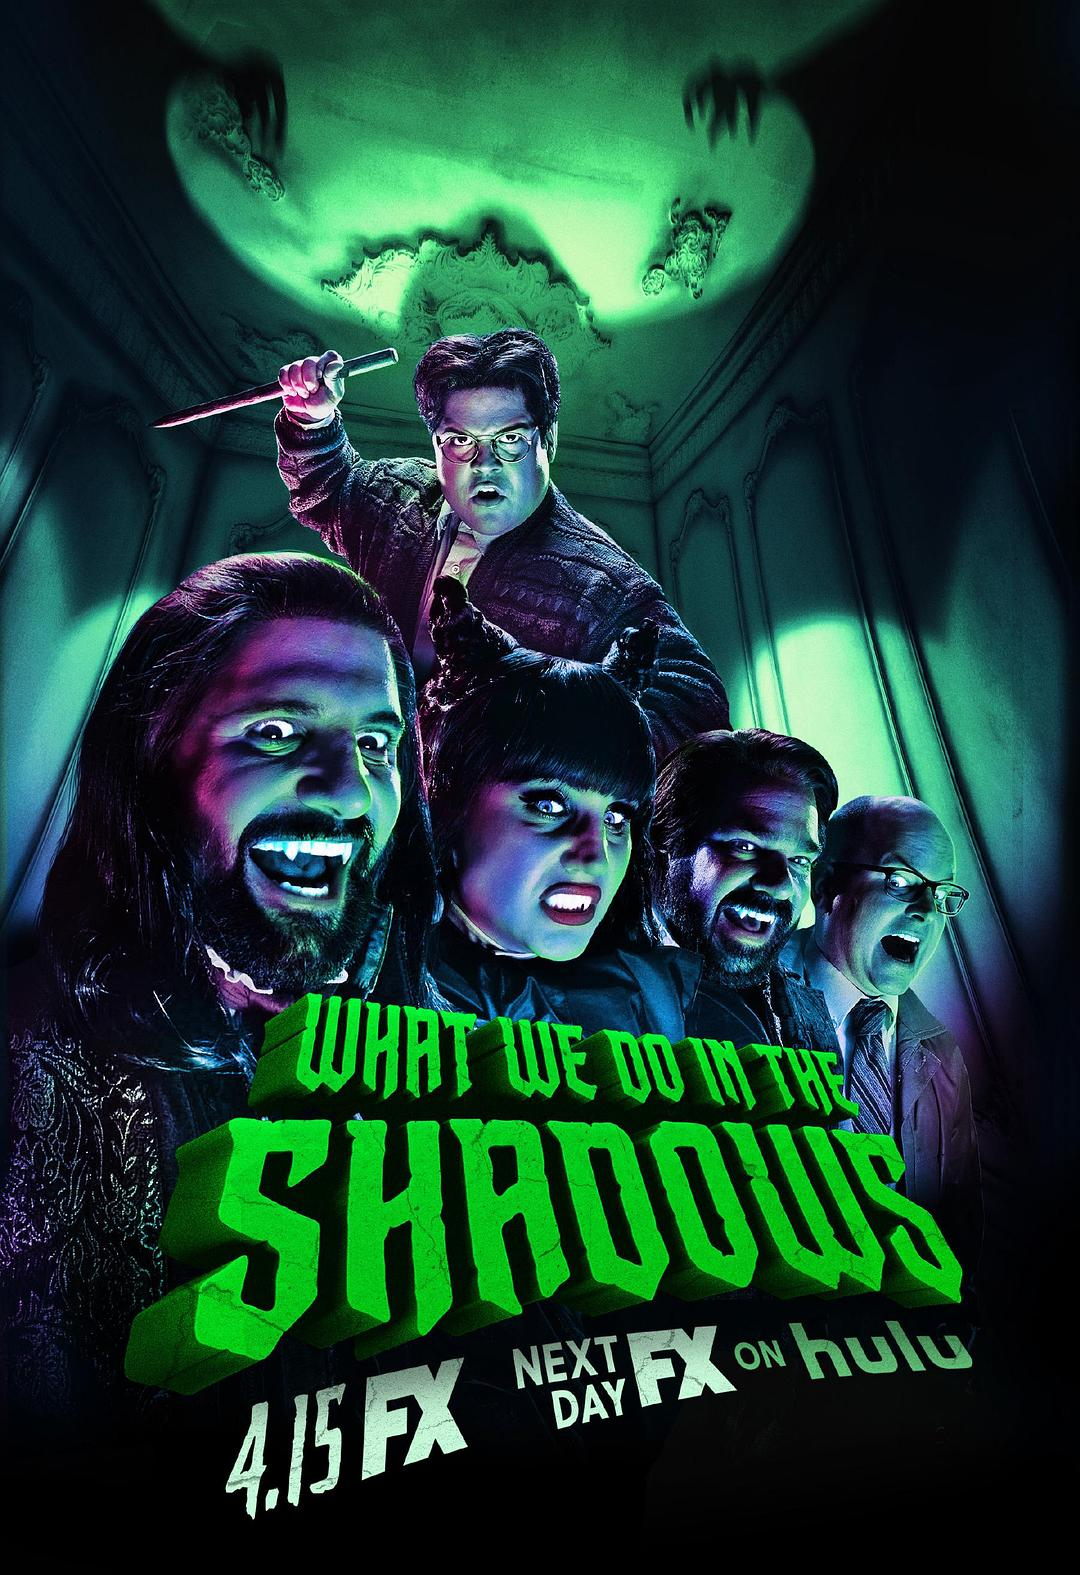 吸血鬼生活 第二季 What We Do in the Shadows Season 2